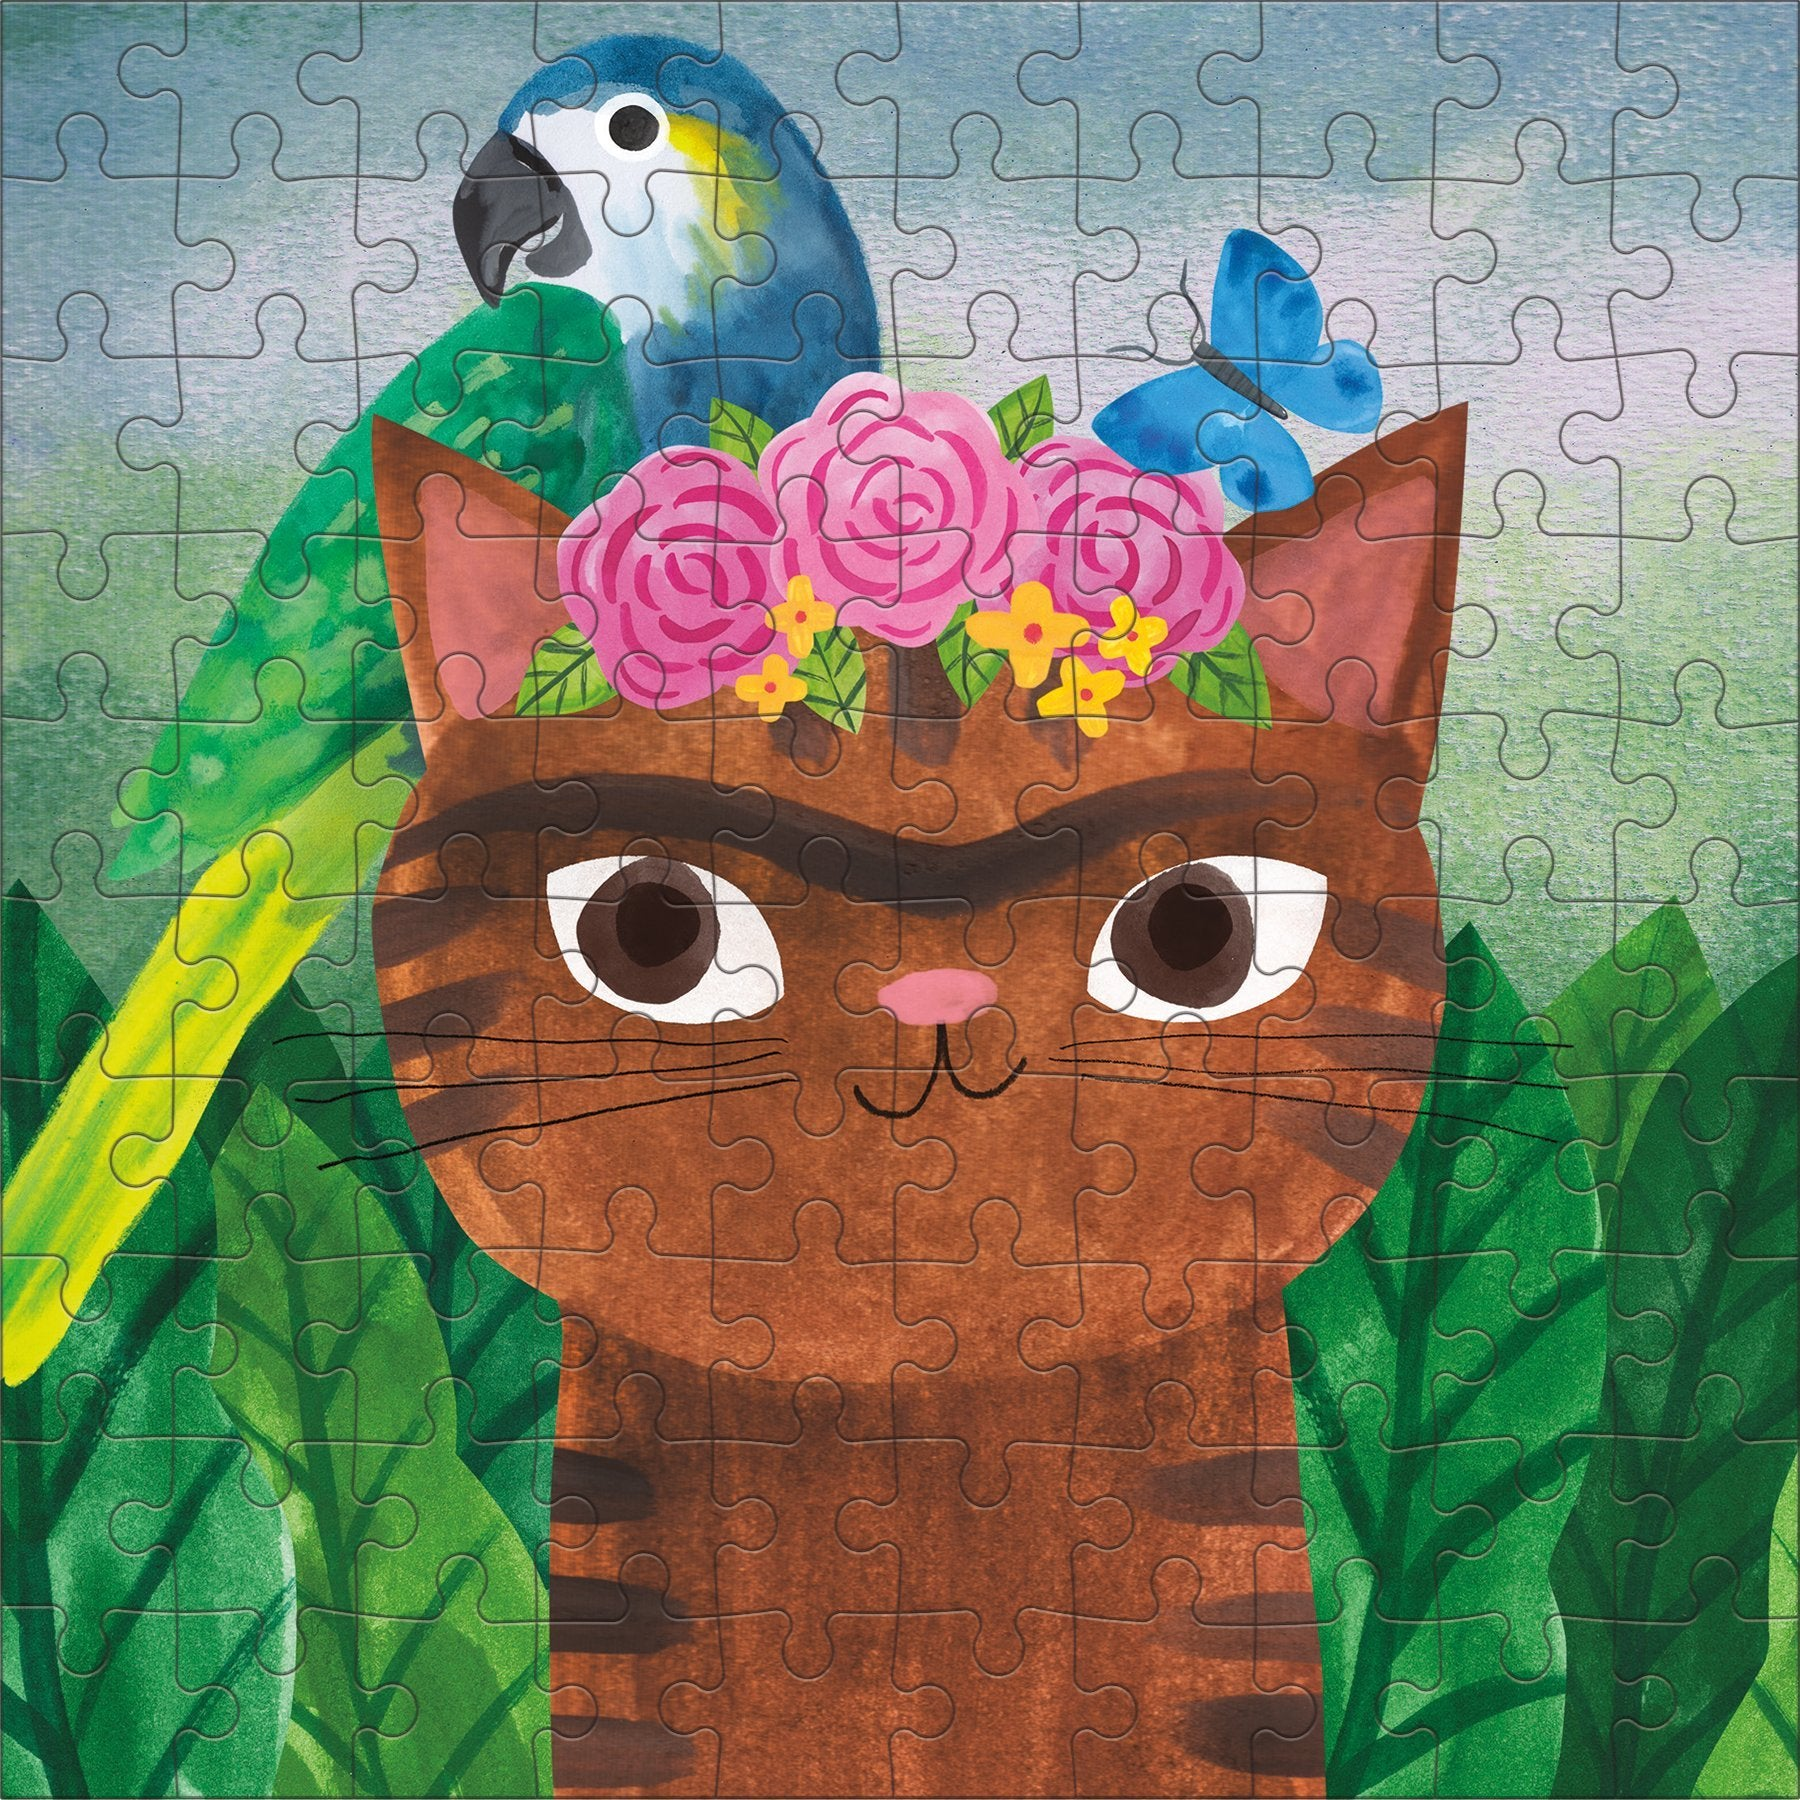 Frida Catlo Puzzle in Can